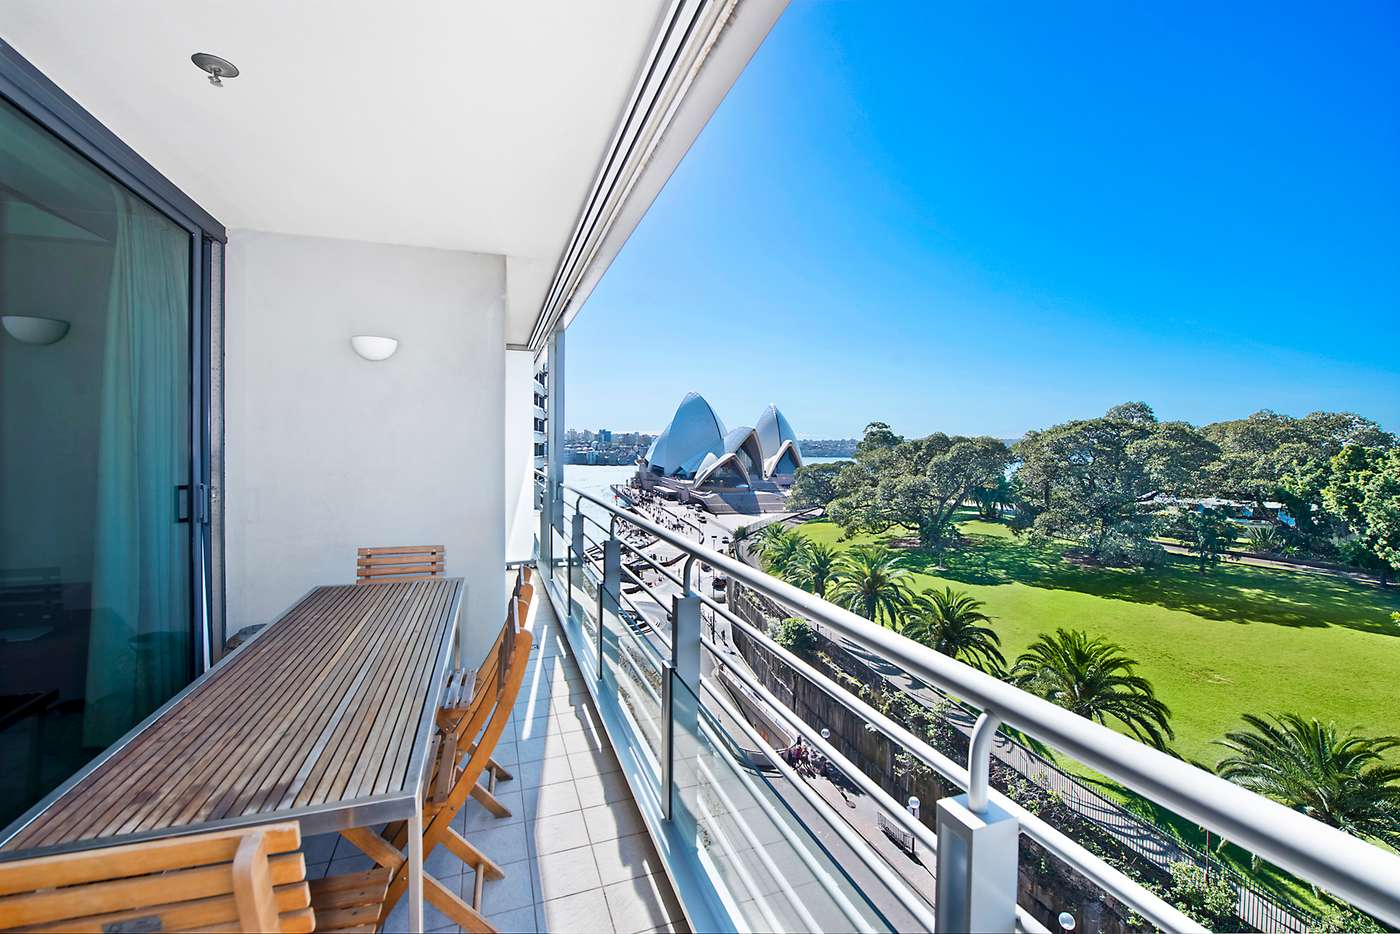 Main view of Homely apartment listing, 61/3 Macquarie Street, Sydney NSW 2000